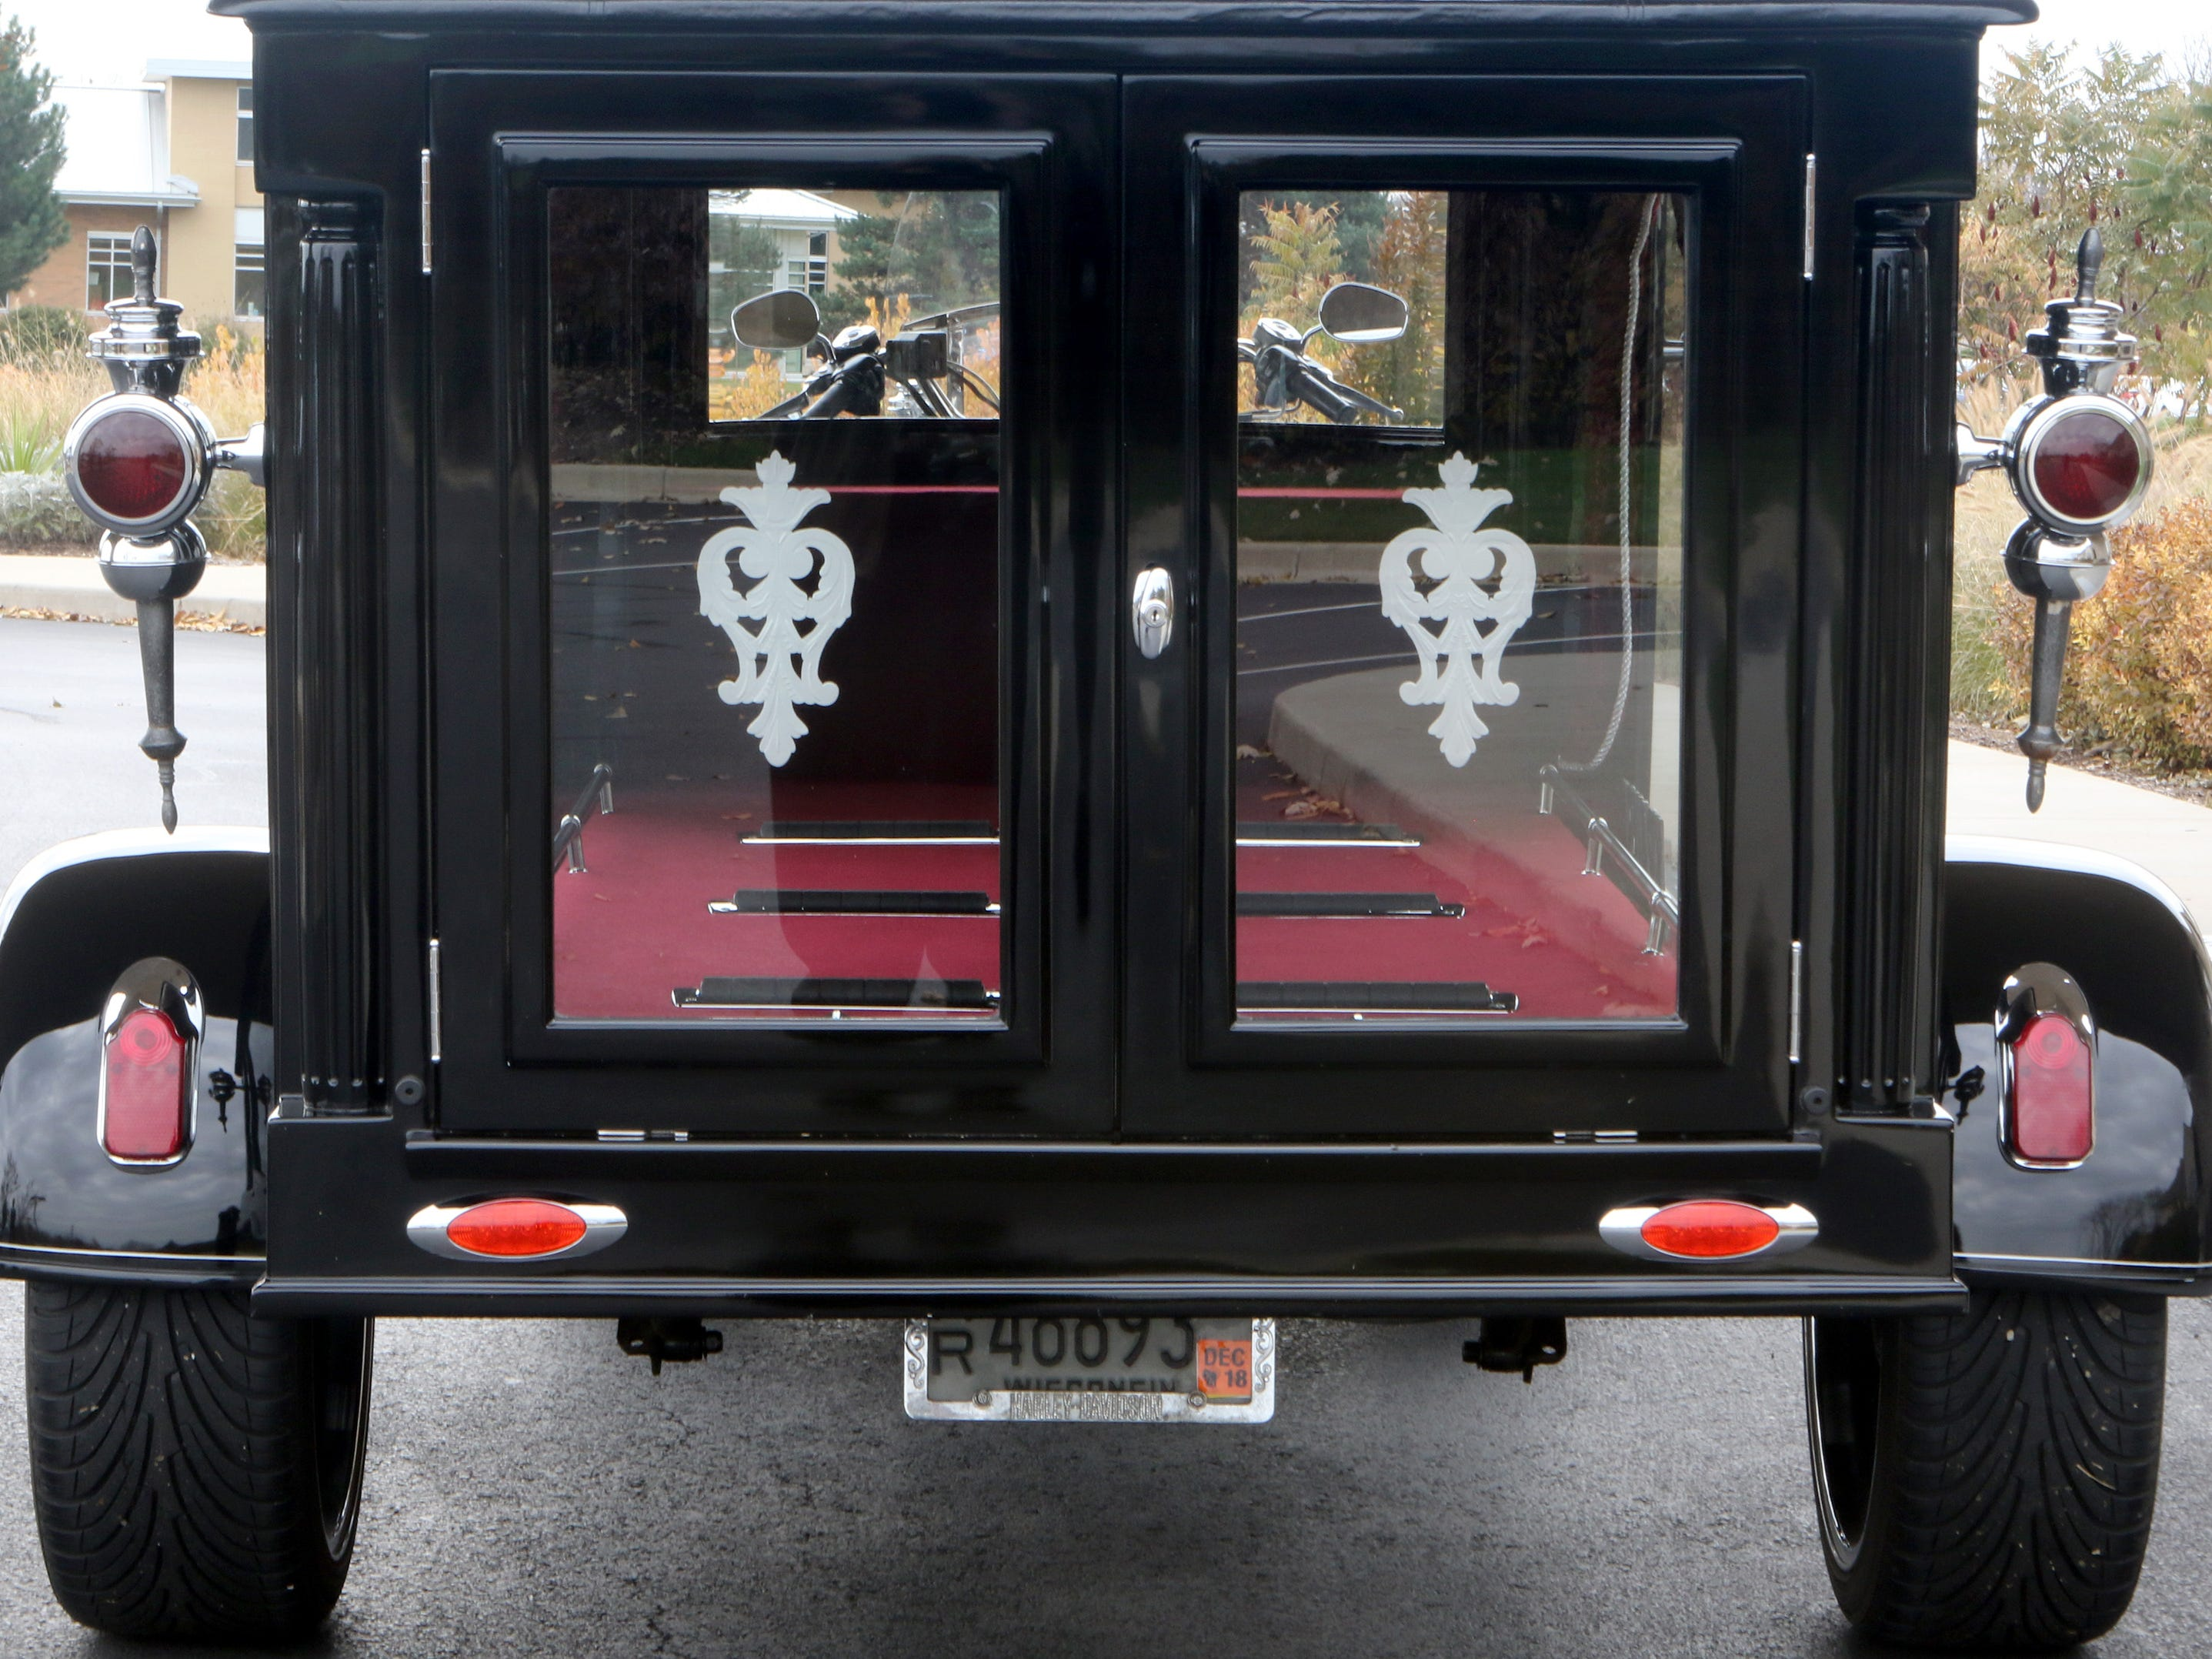 Krause Funeral Home offers Harley enthusiasts a final ride in a hearse that is designed after old horse-drawn hearses.